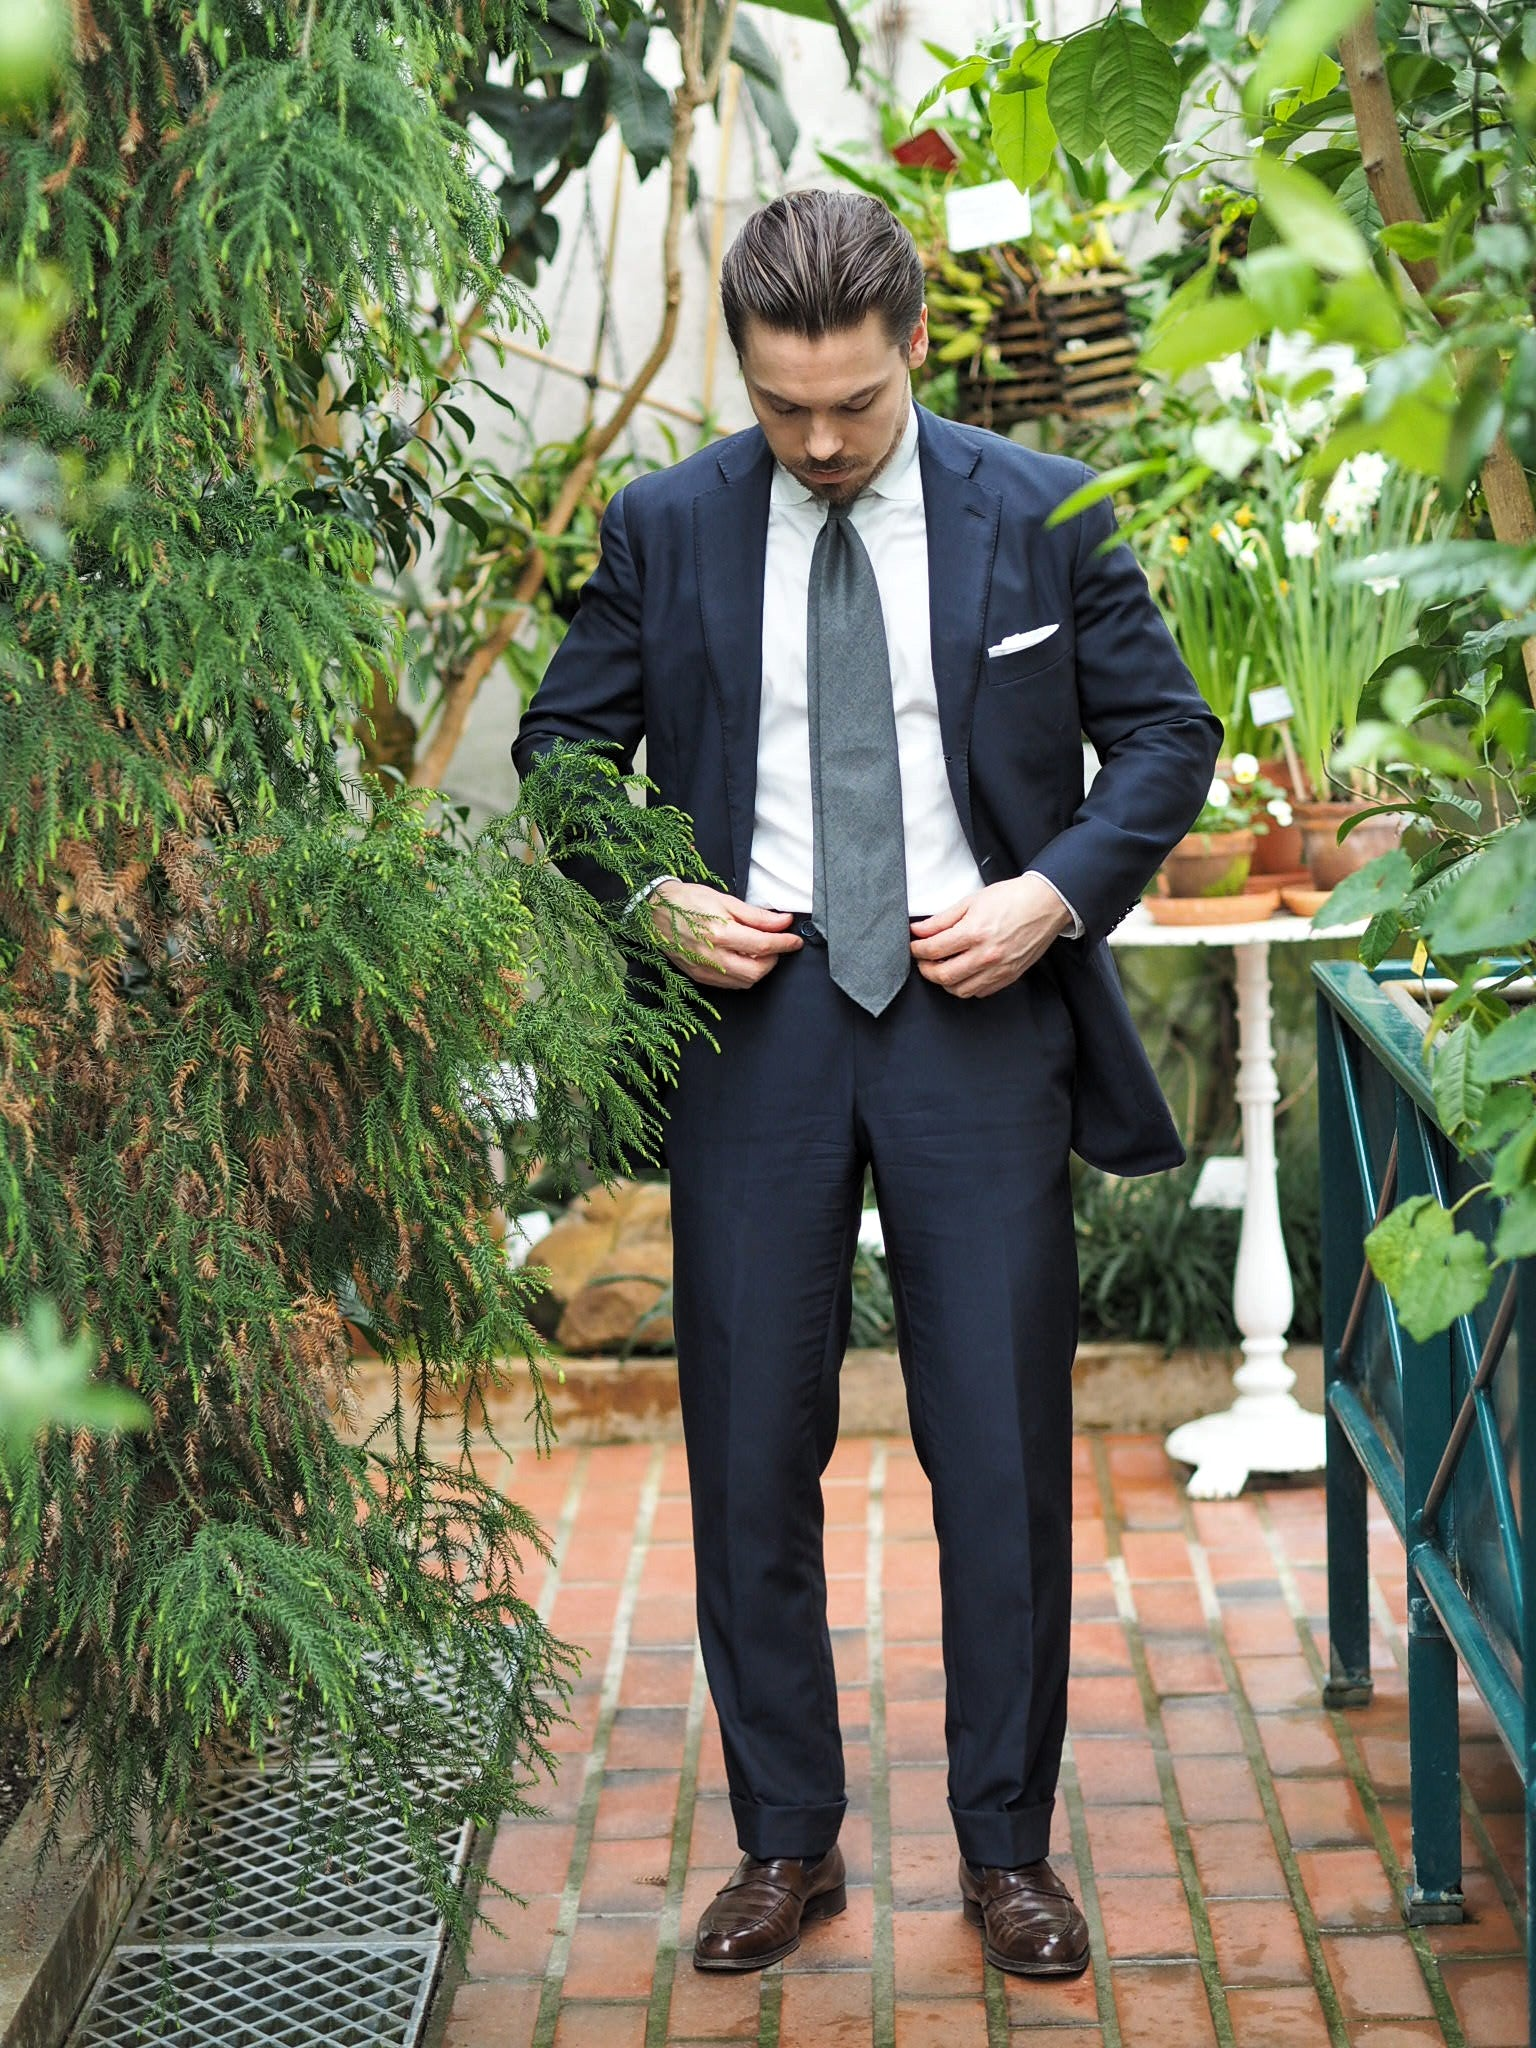 Dark navy blue suit with gray tie for summer parties